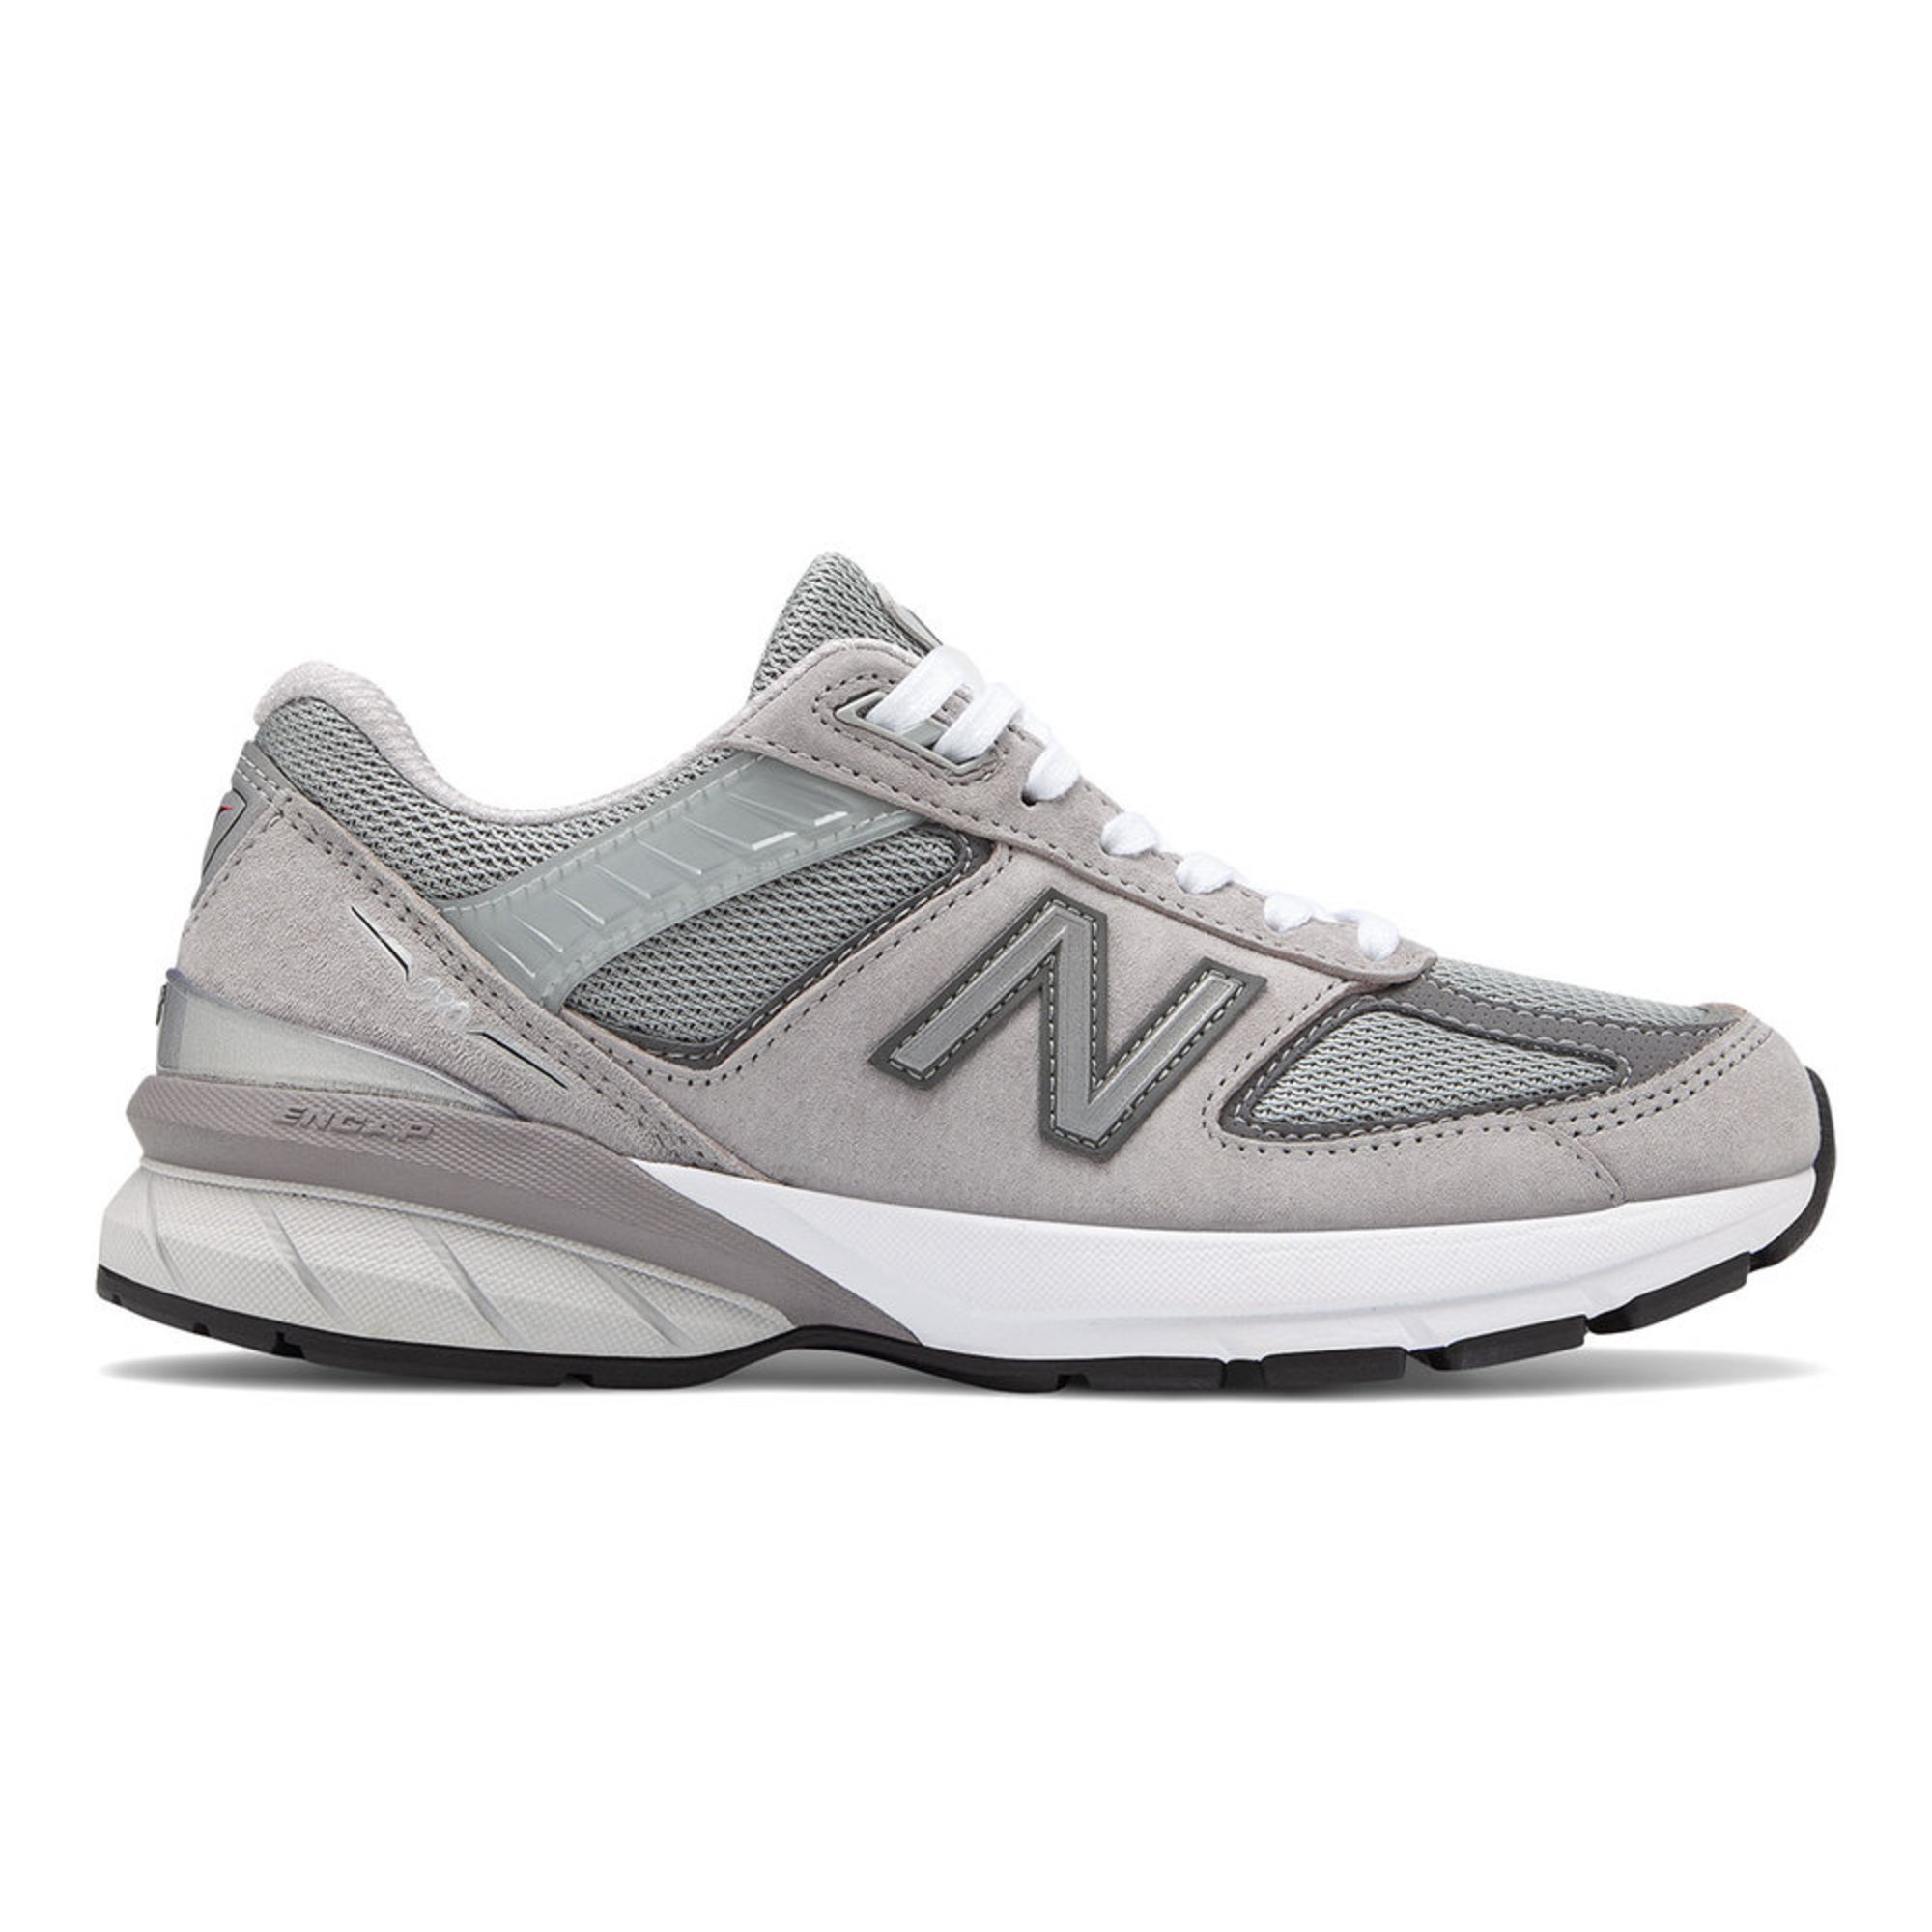 designer fashion c2f9d ca538 New Balance Women's 990 V5 Lifestyle Running Shoe | Women's ...